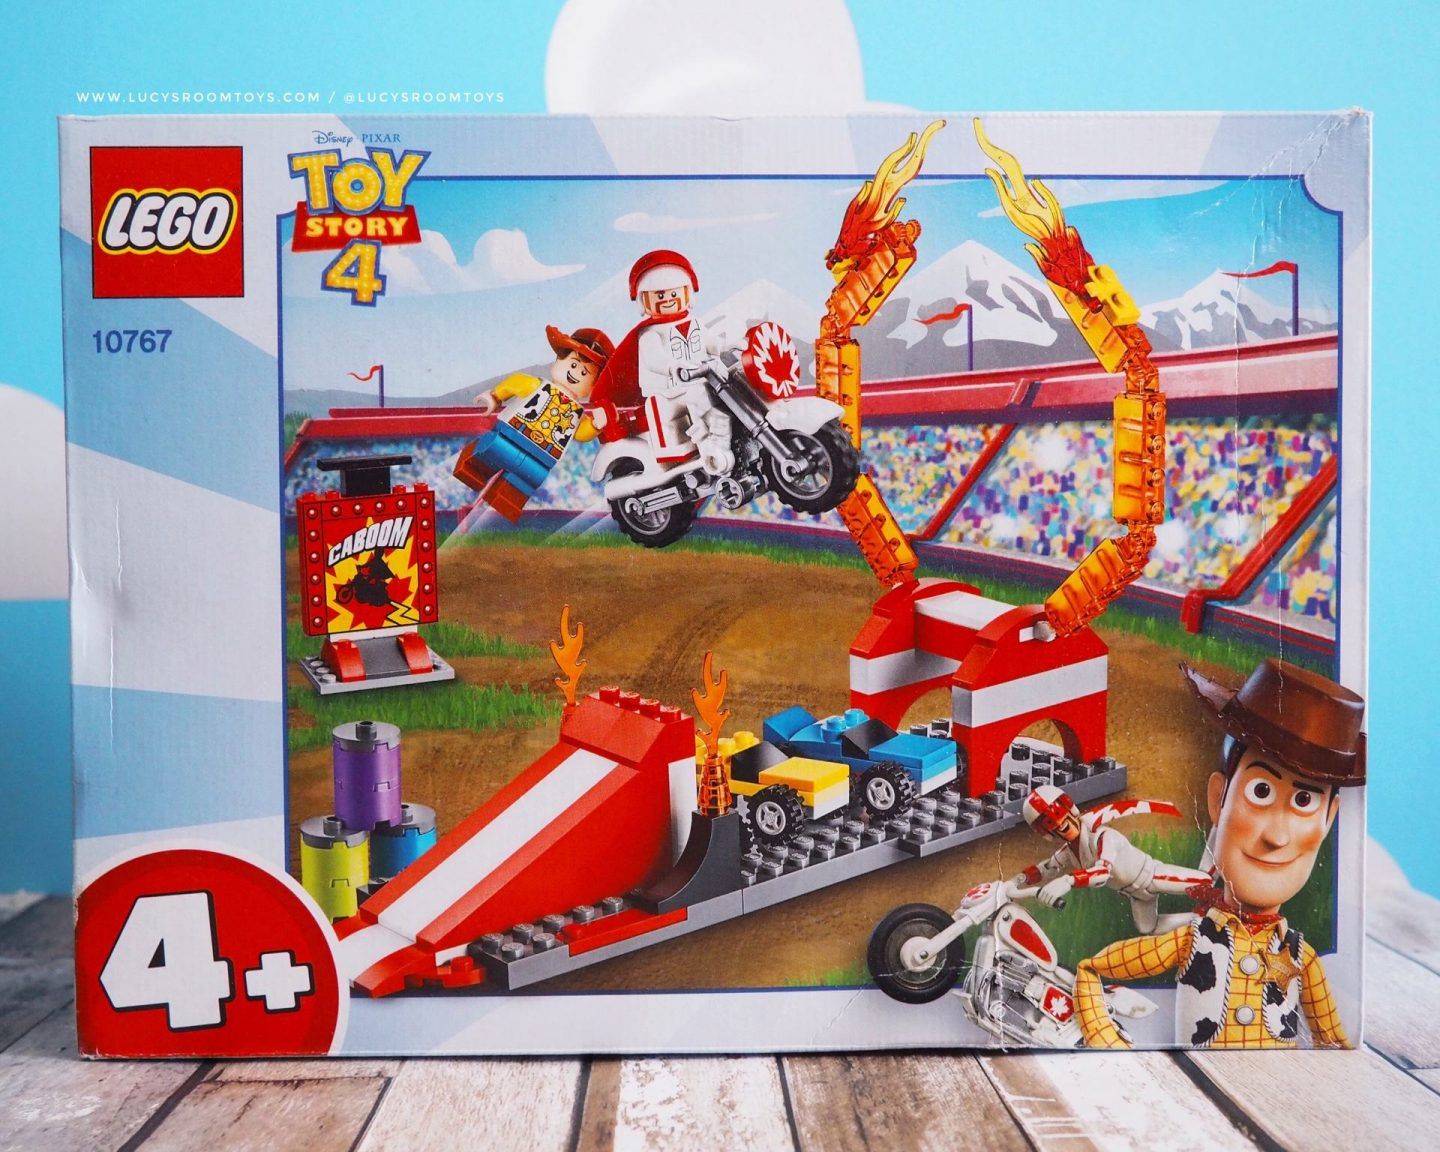 Toy Story 4 Duke Caboom Lego Set (10767)